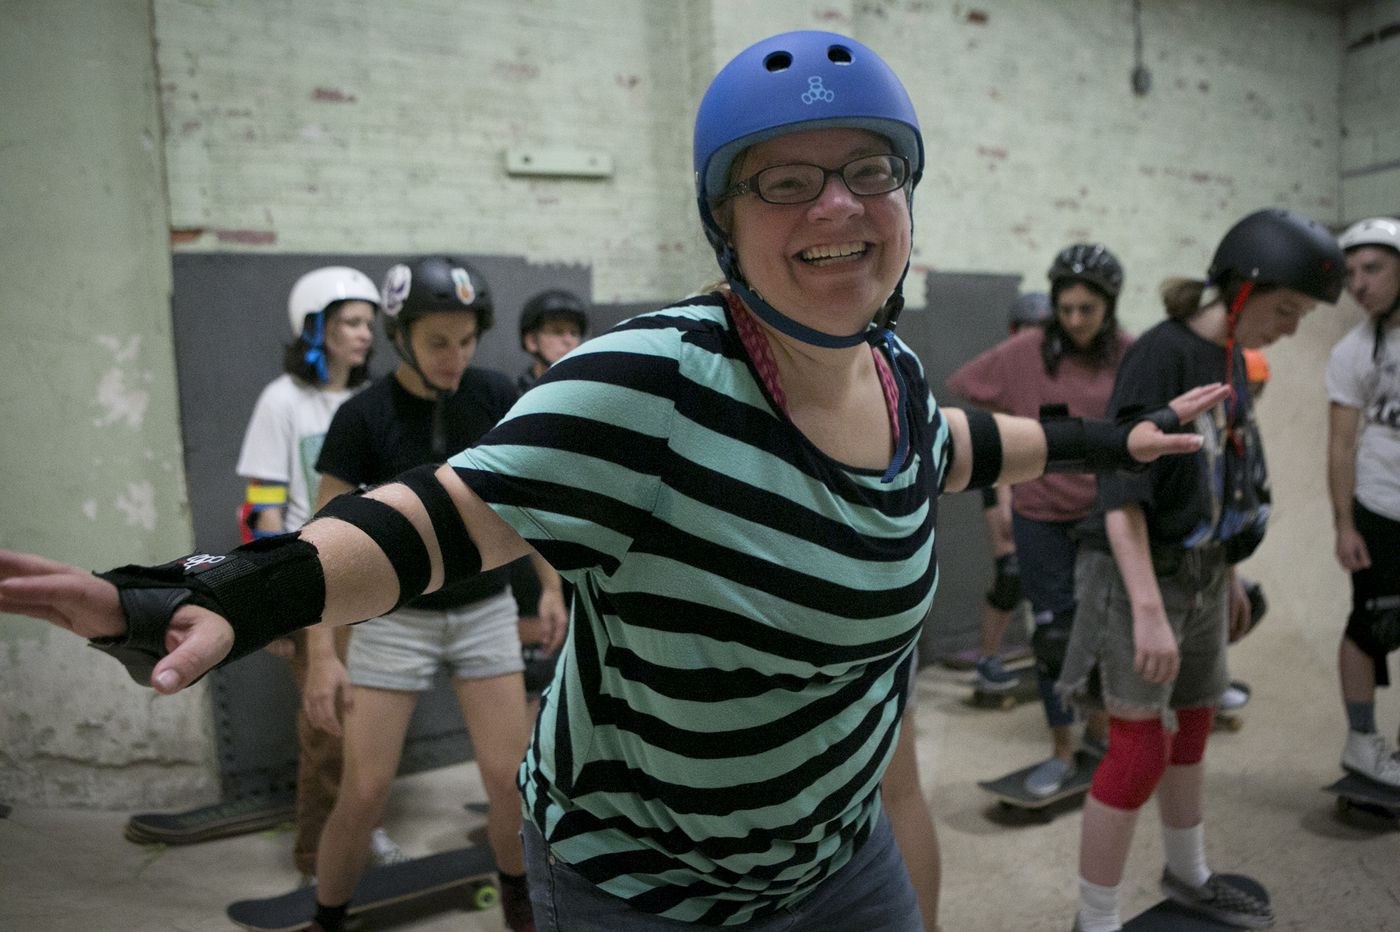 No, you're not too old to skate: West Philly skatepark offers adult classes